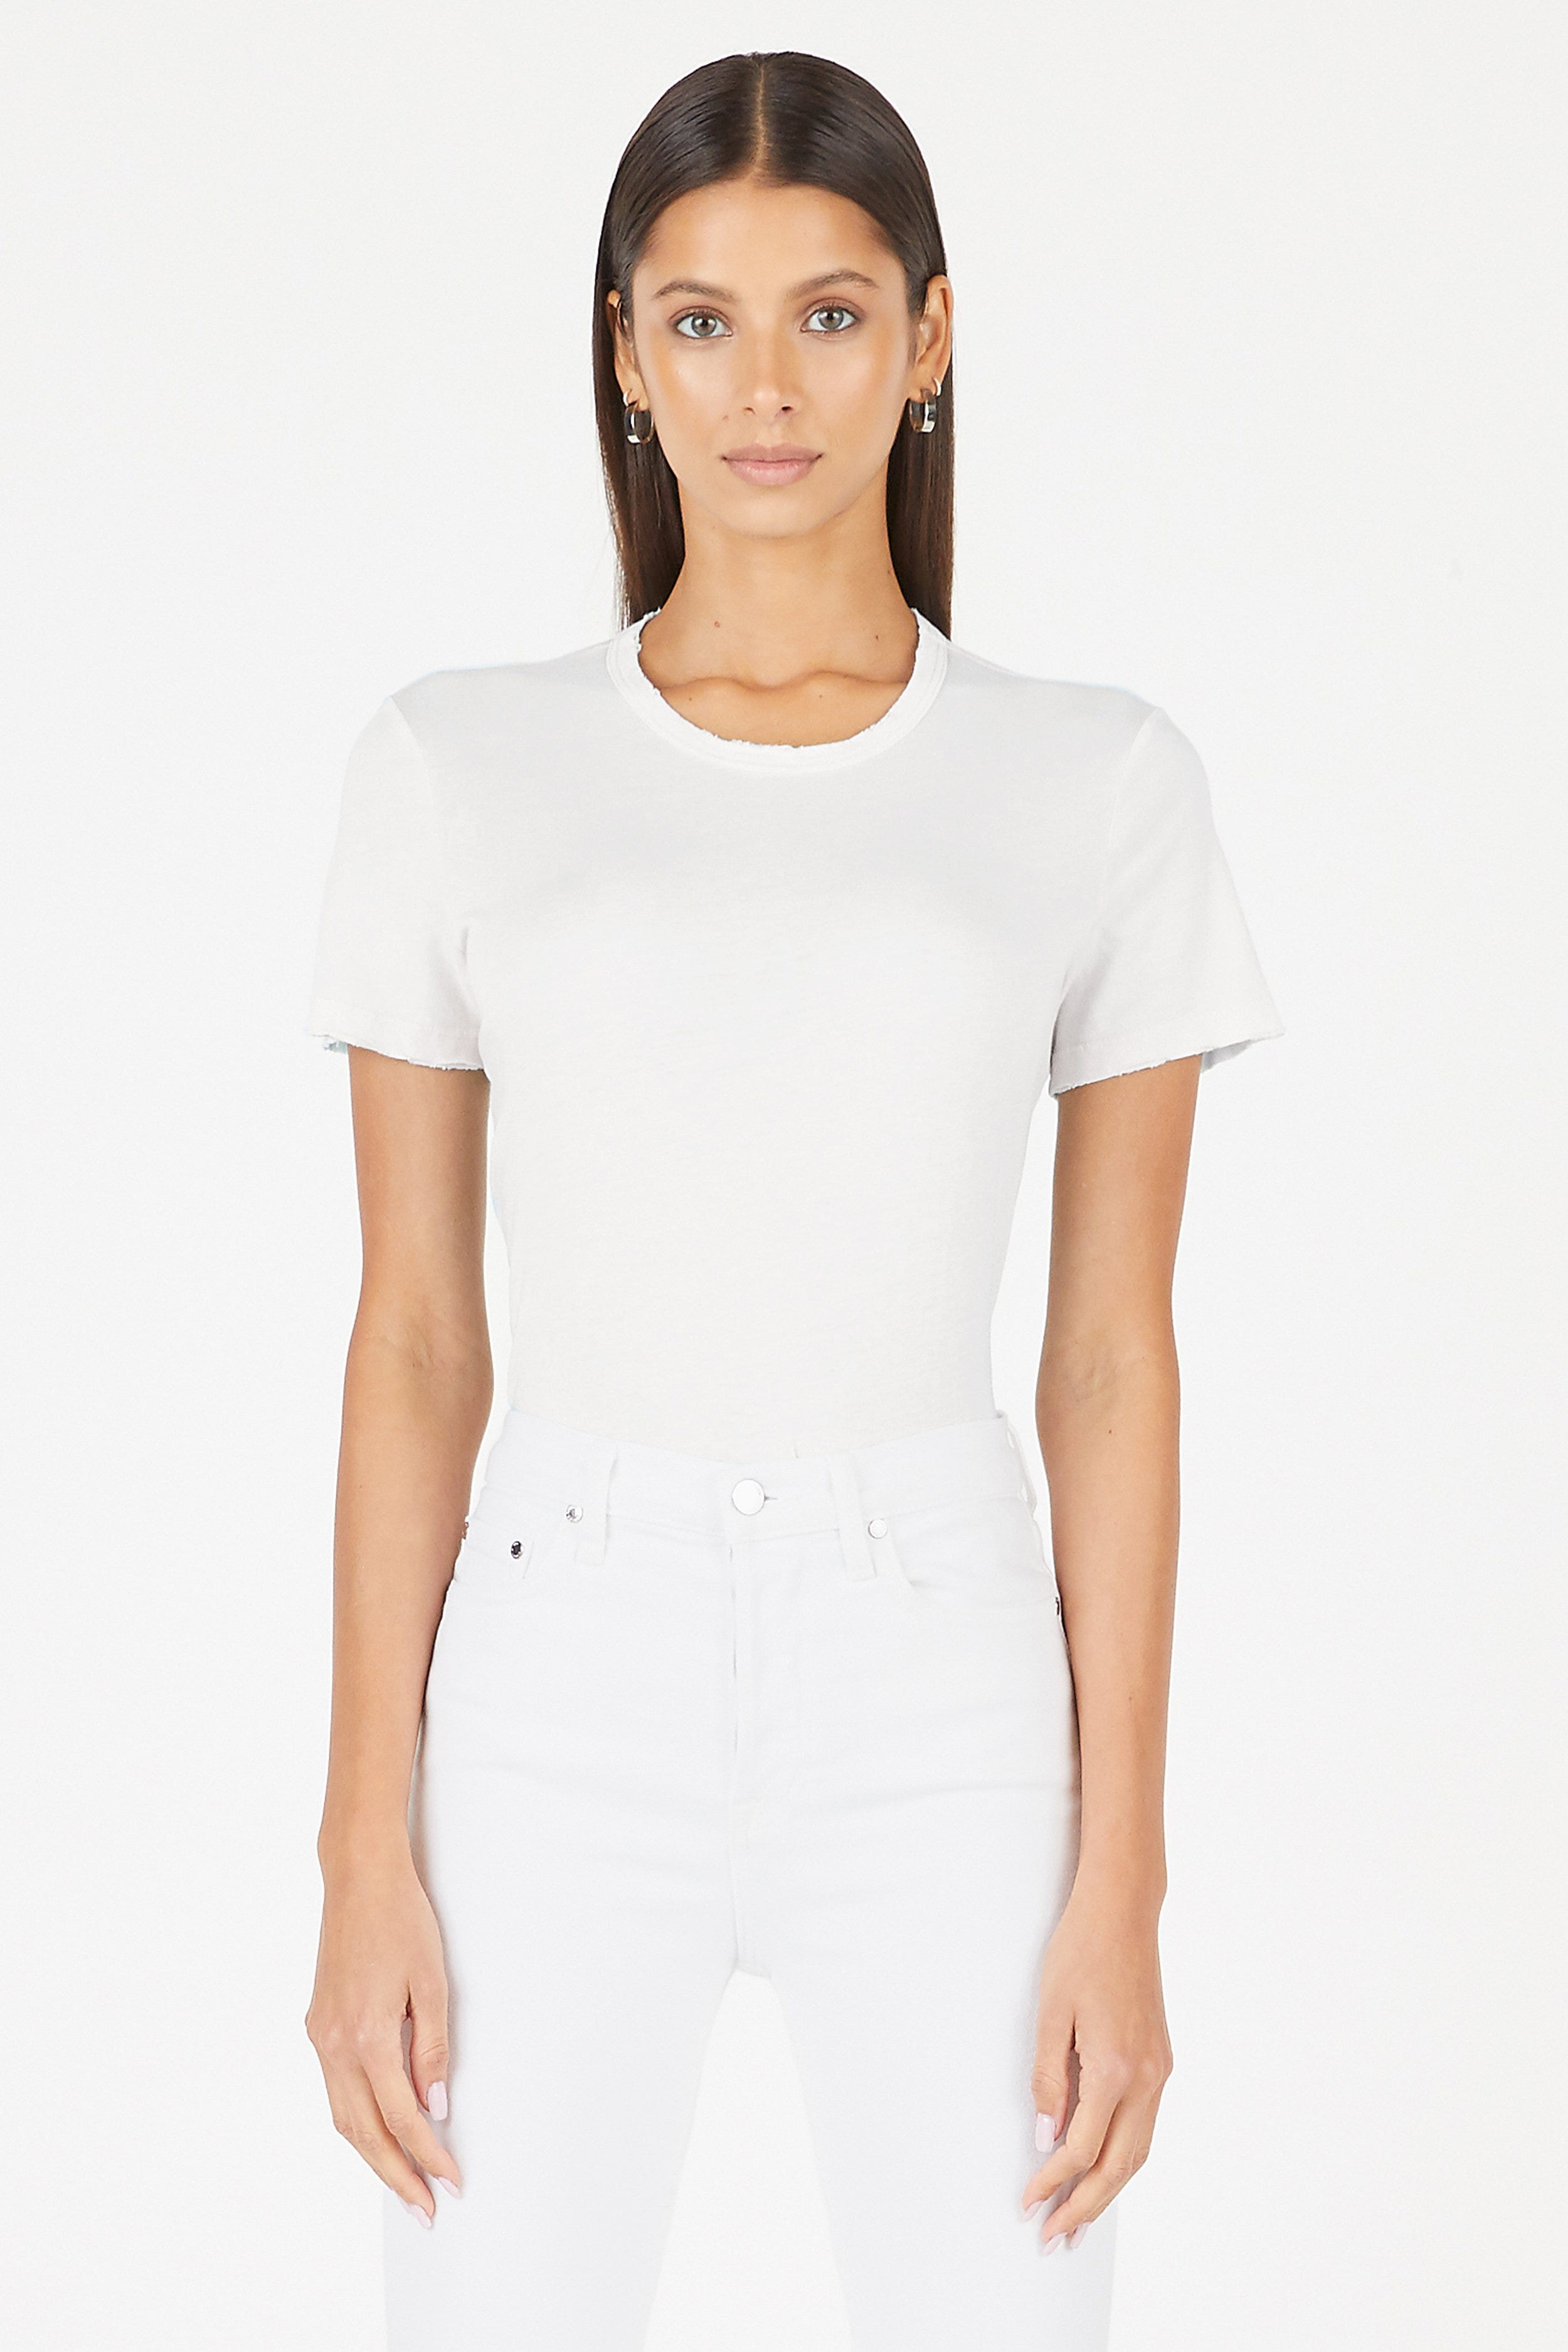 87697ecbe Best Quality Womens White T-Shirts 2019 Brand Reviews